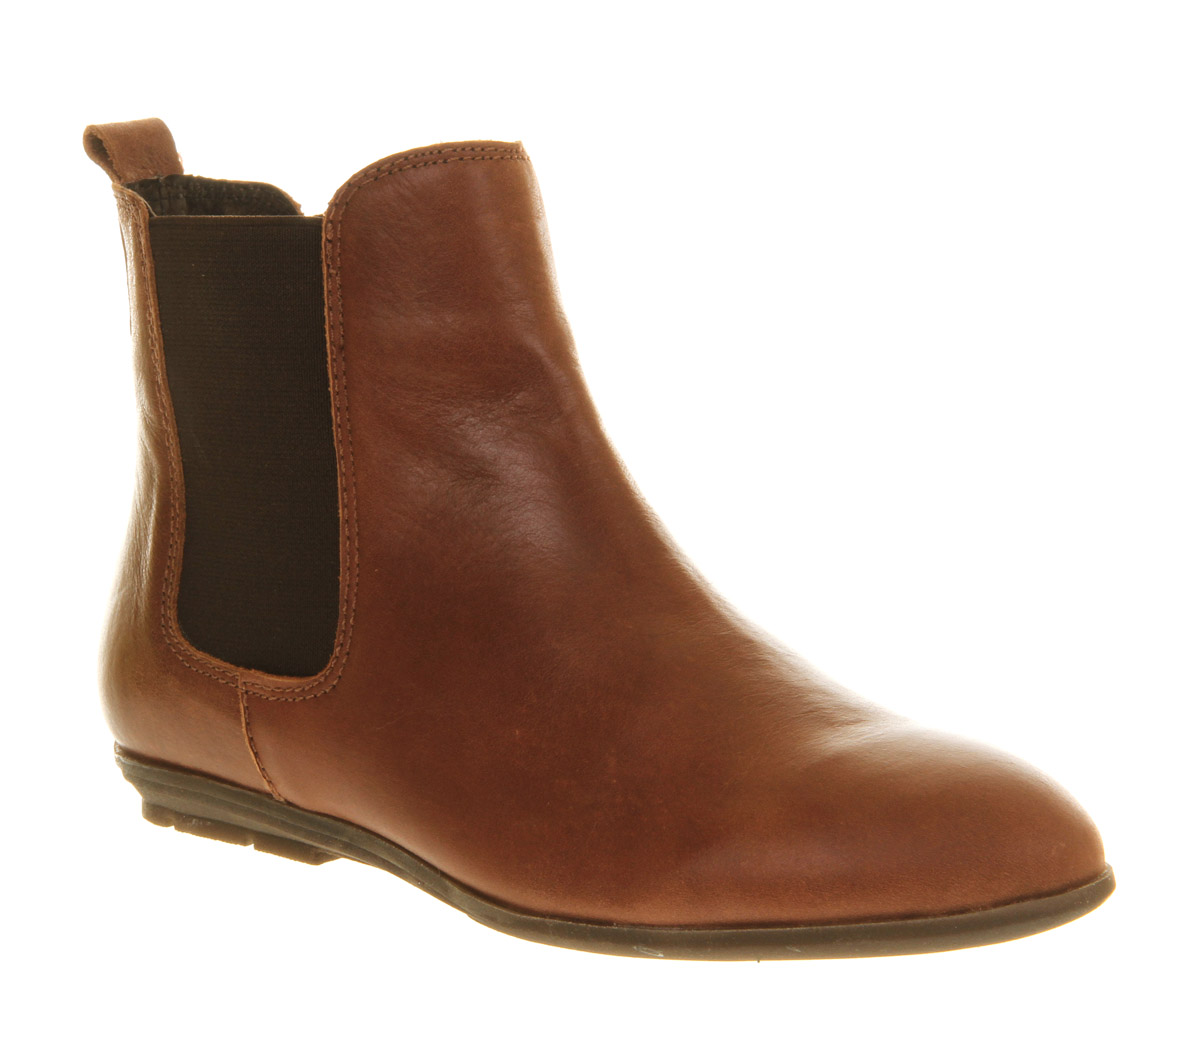 A wide range of women's boots so perfect for dog-walks and festival chic by world famous brands; whatever your taste, shopping, strolling or street, we've assembled a fine selection and of course quality and style are at it's heart.